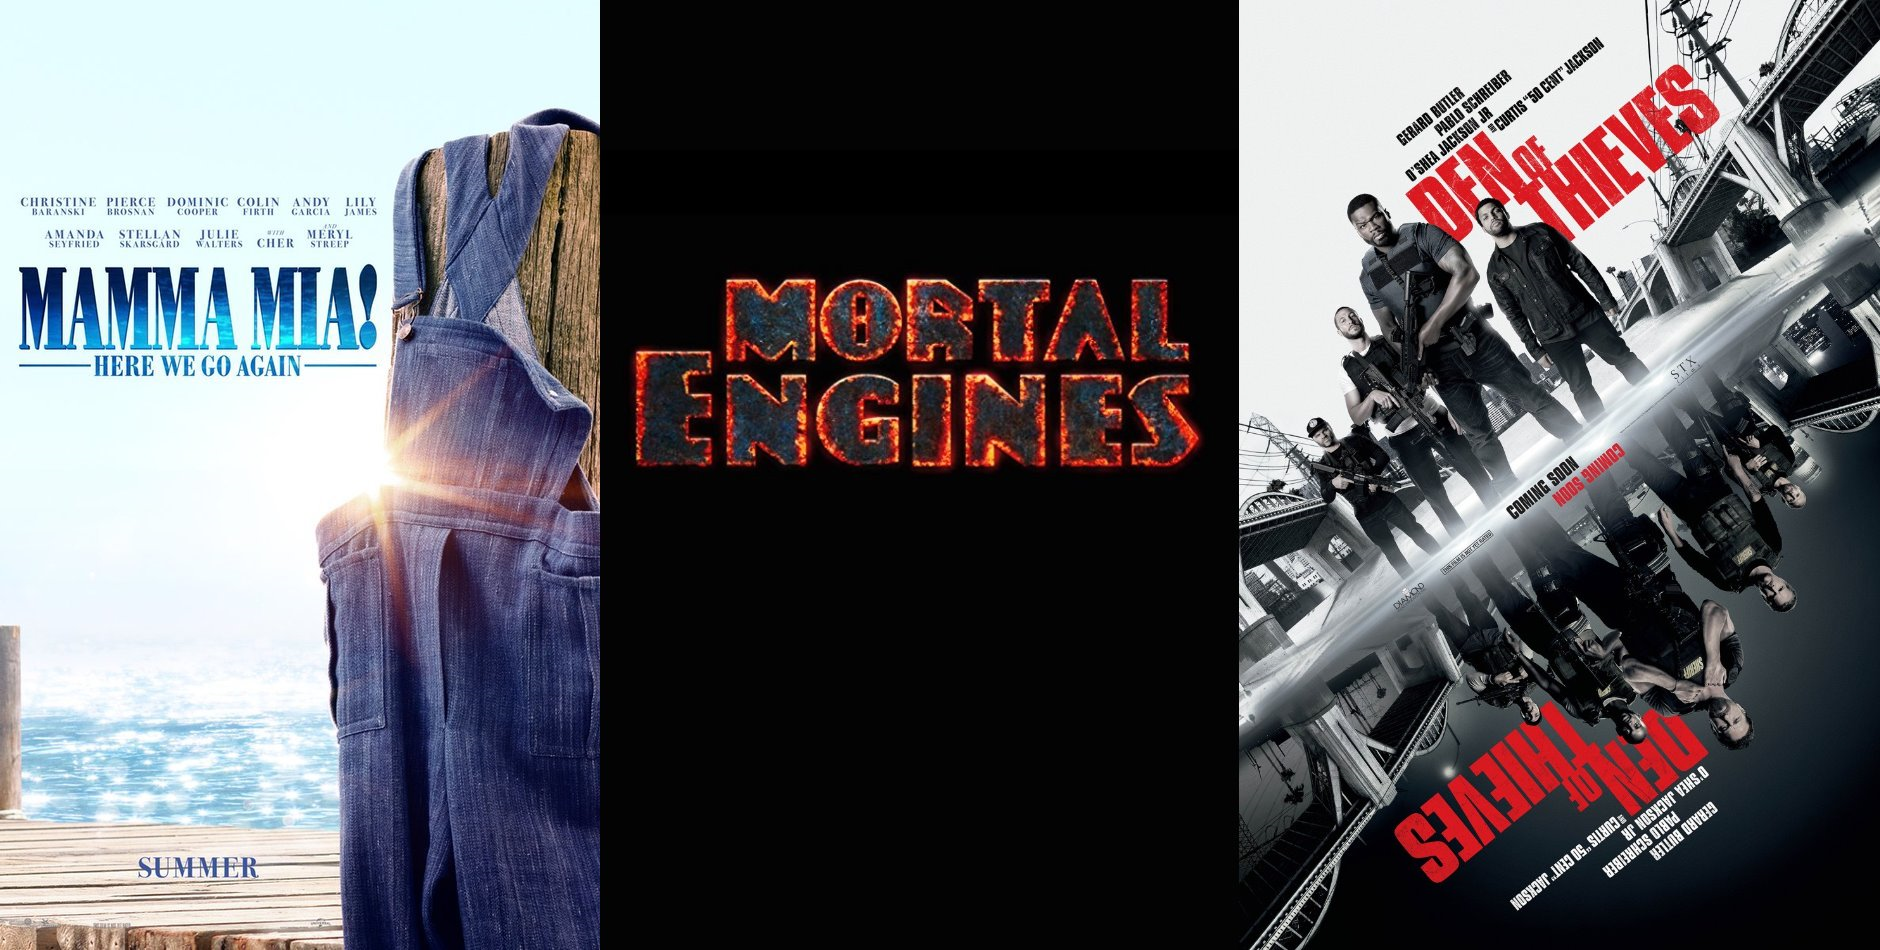 Trailer-Watchin' Wednesday: Mortal Engines, Mamma Mia 2, Den of Thieves